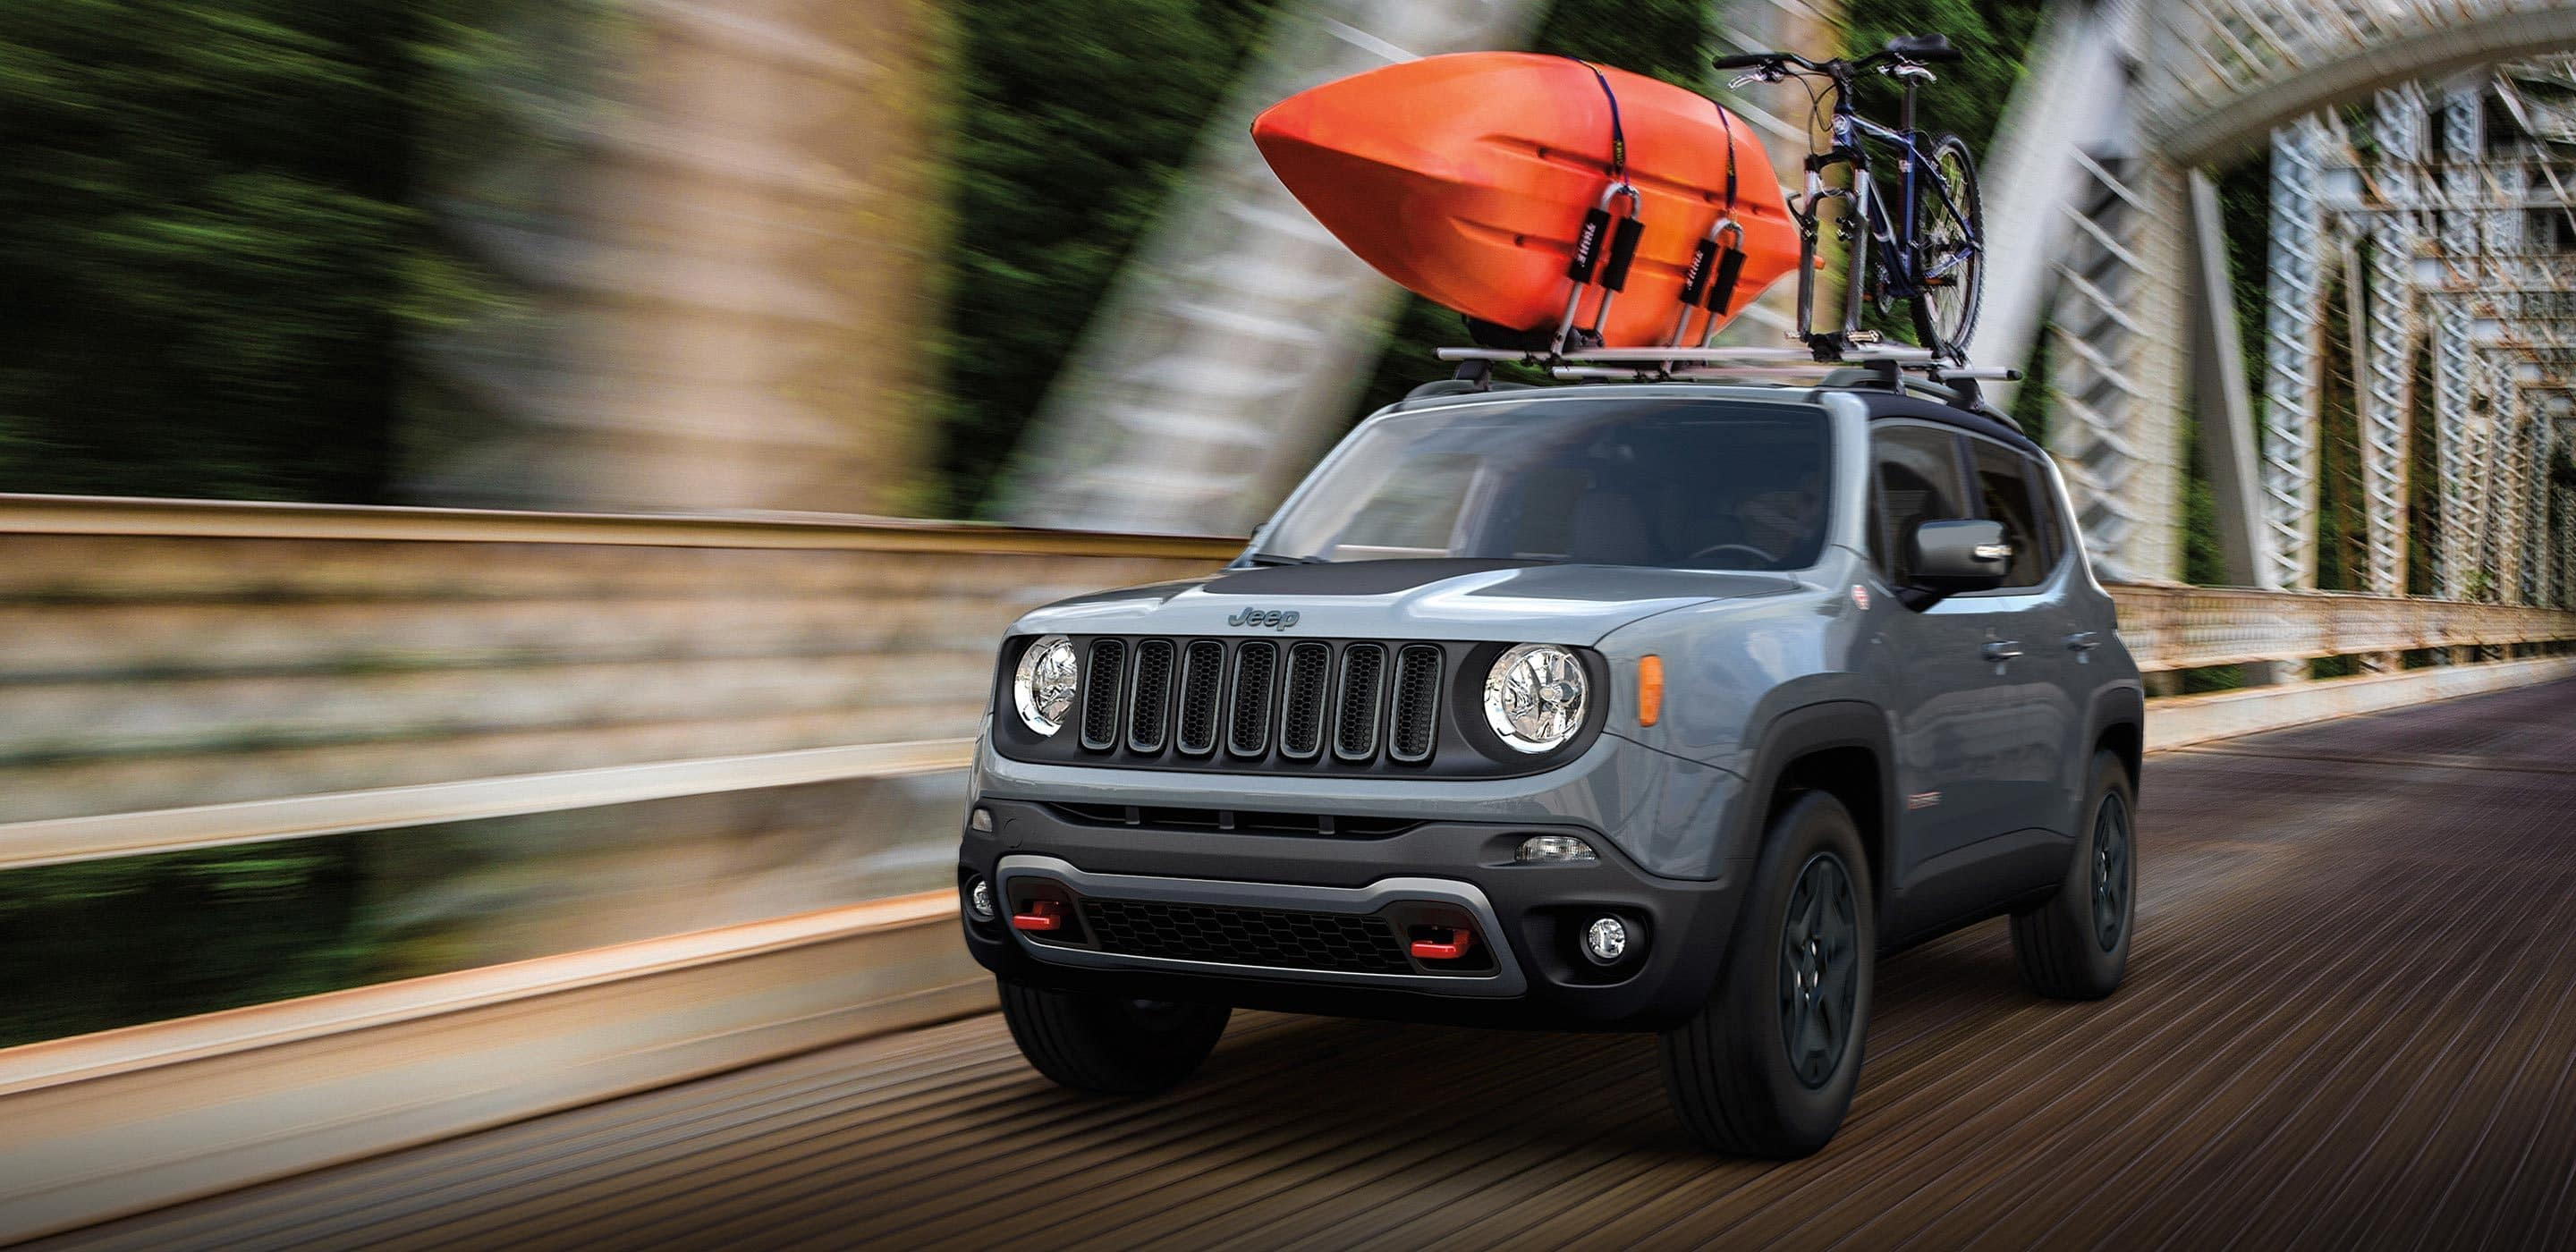 2018 Jeep Renegade: Changes, Design, Features, Price >> 2018 Jeep Renegade For Sale Near Owings Mills Md Baltimore